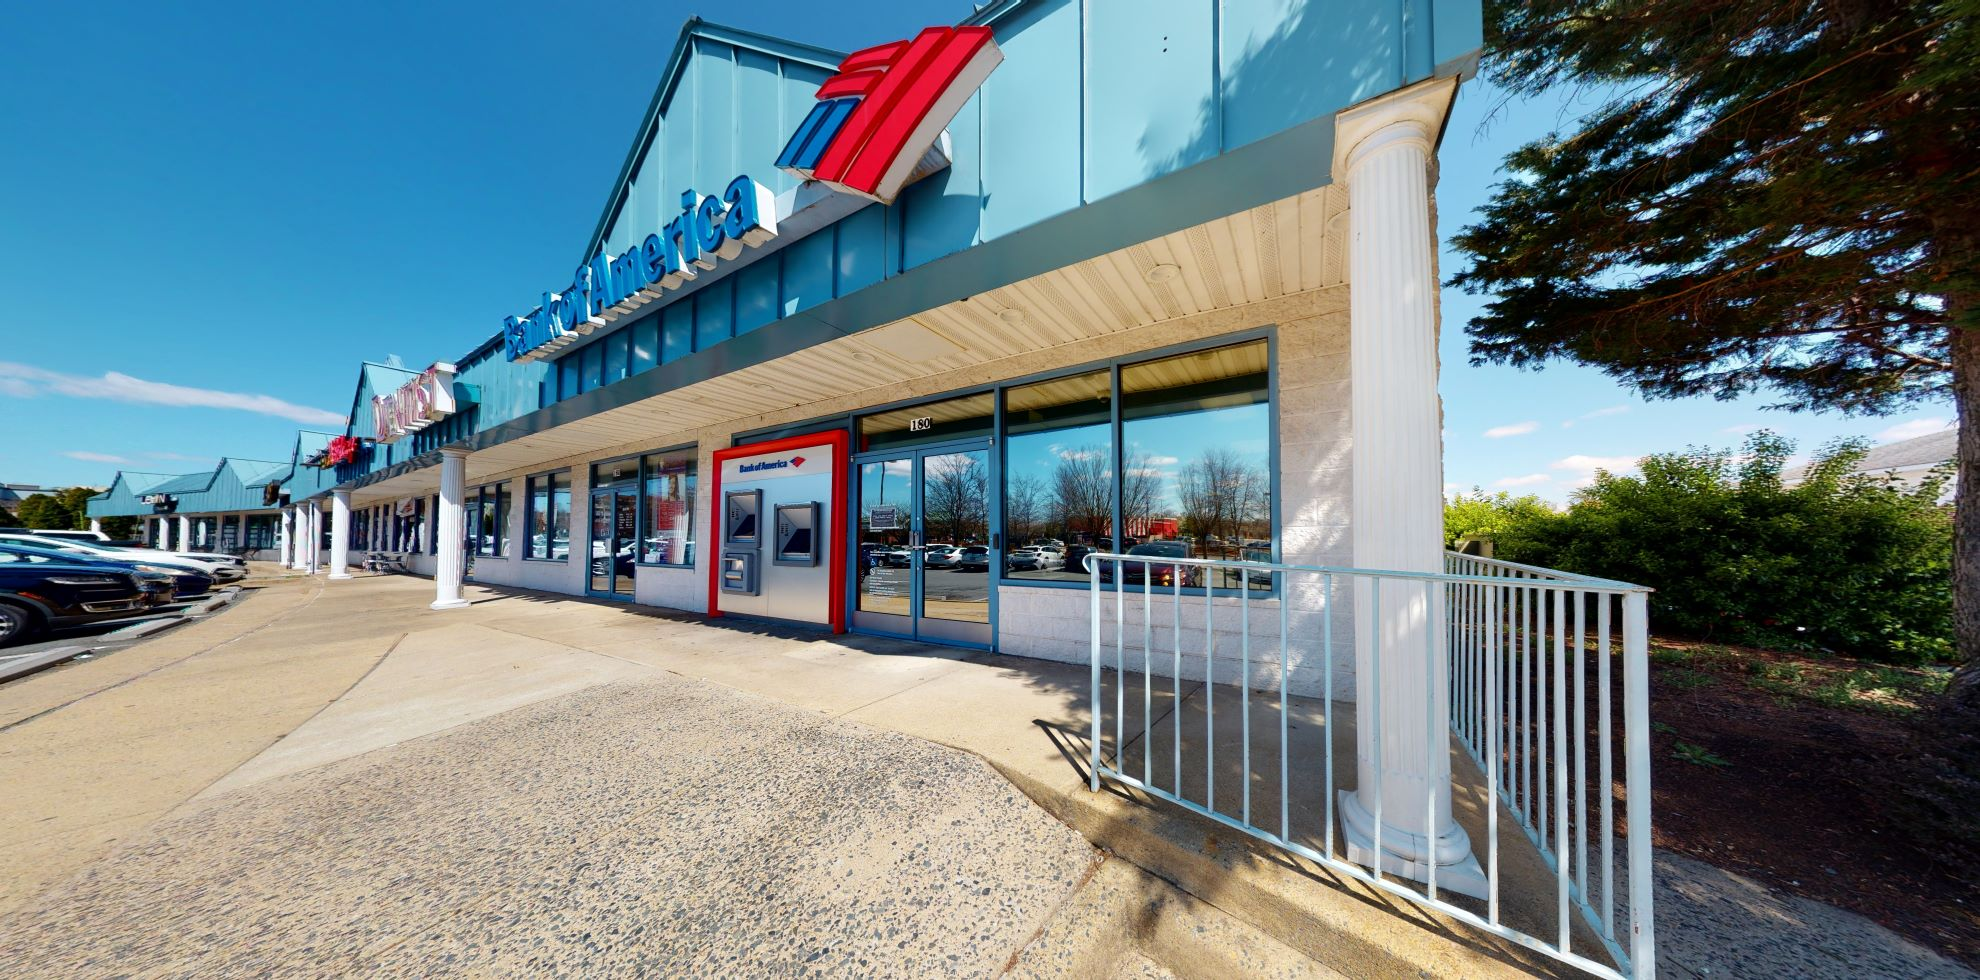 Bank of America financial center with walk-up ATM   45985 Regal Plz, Sterling, VA 20165